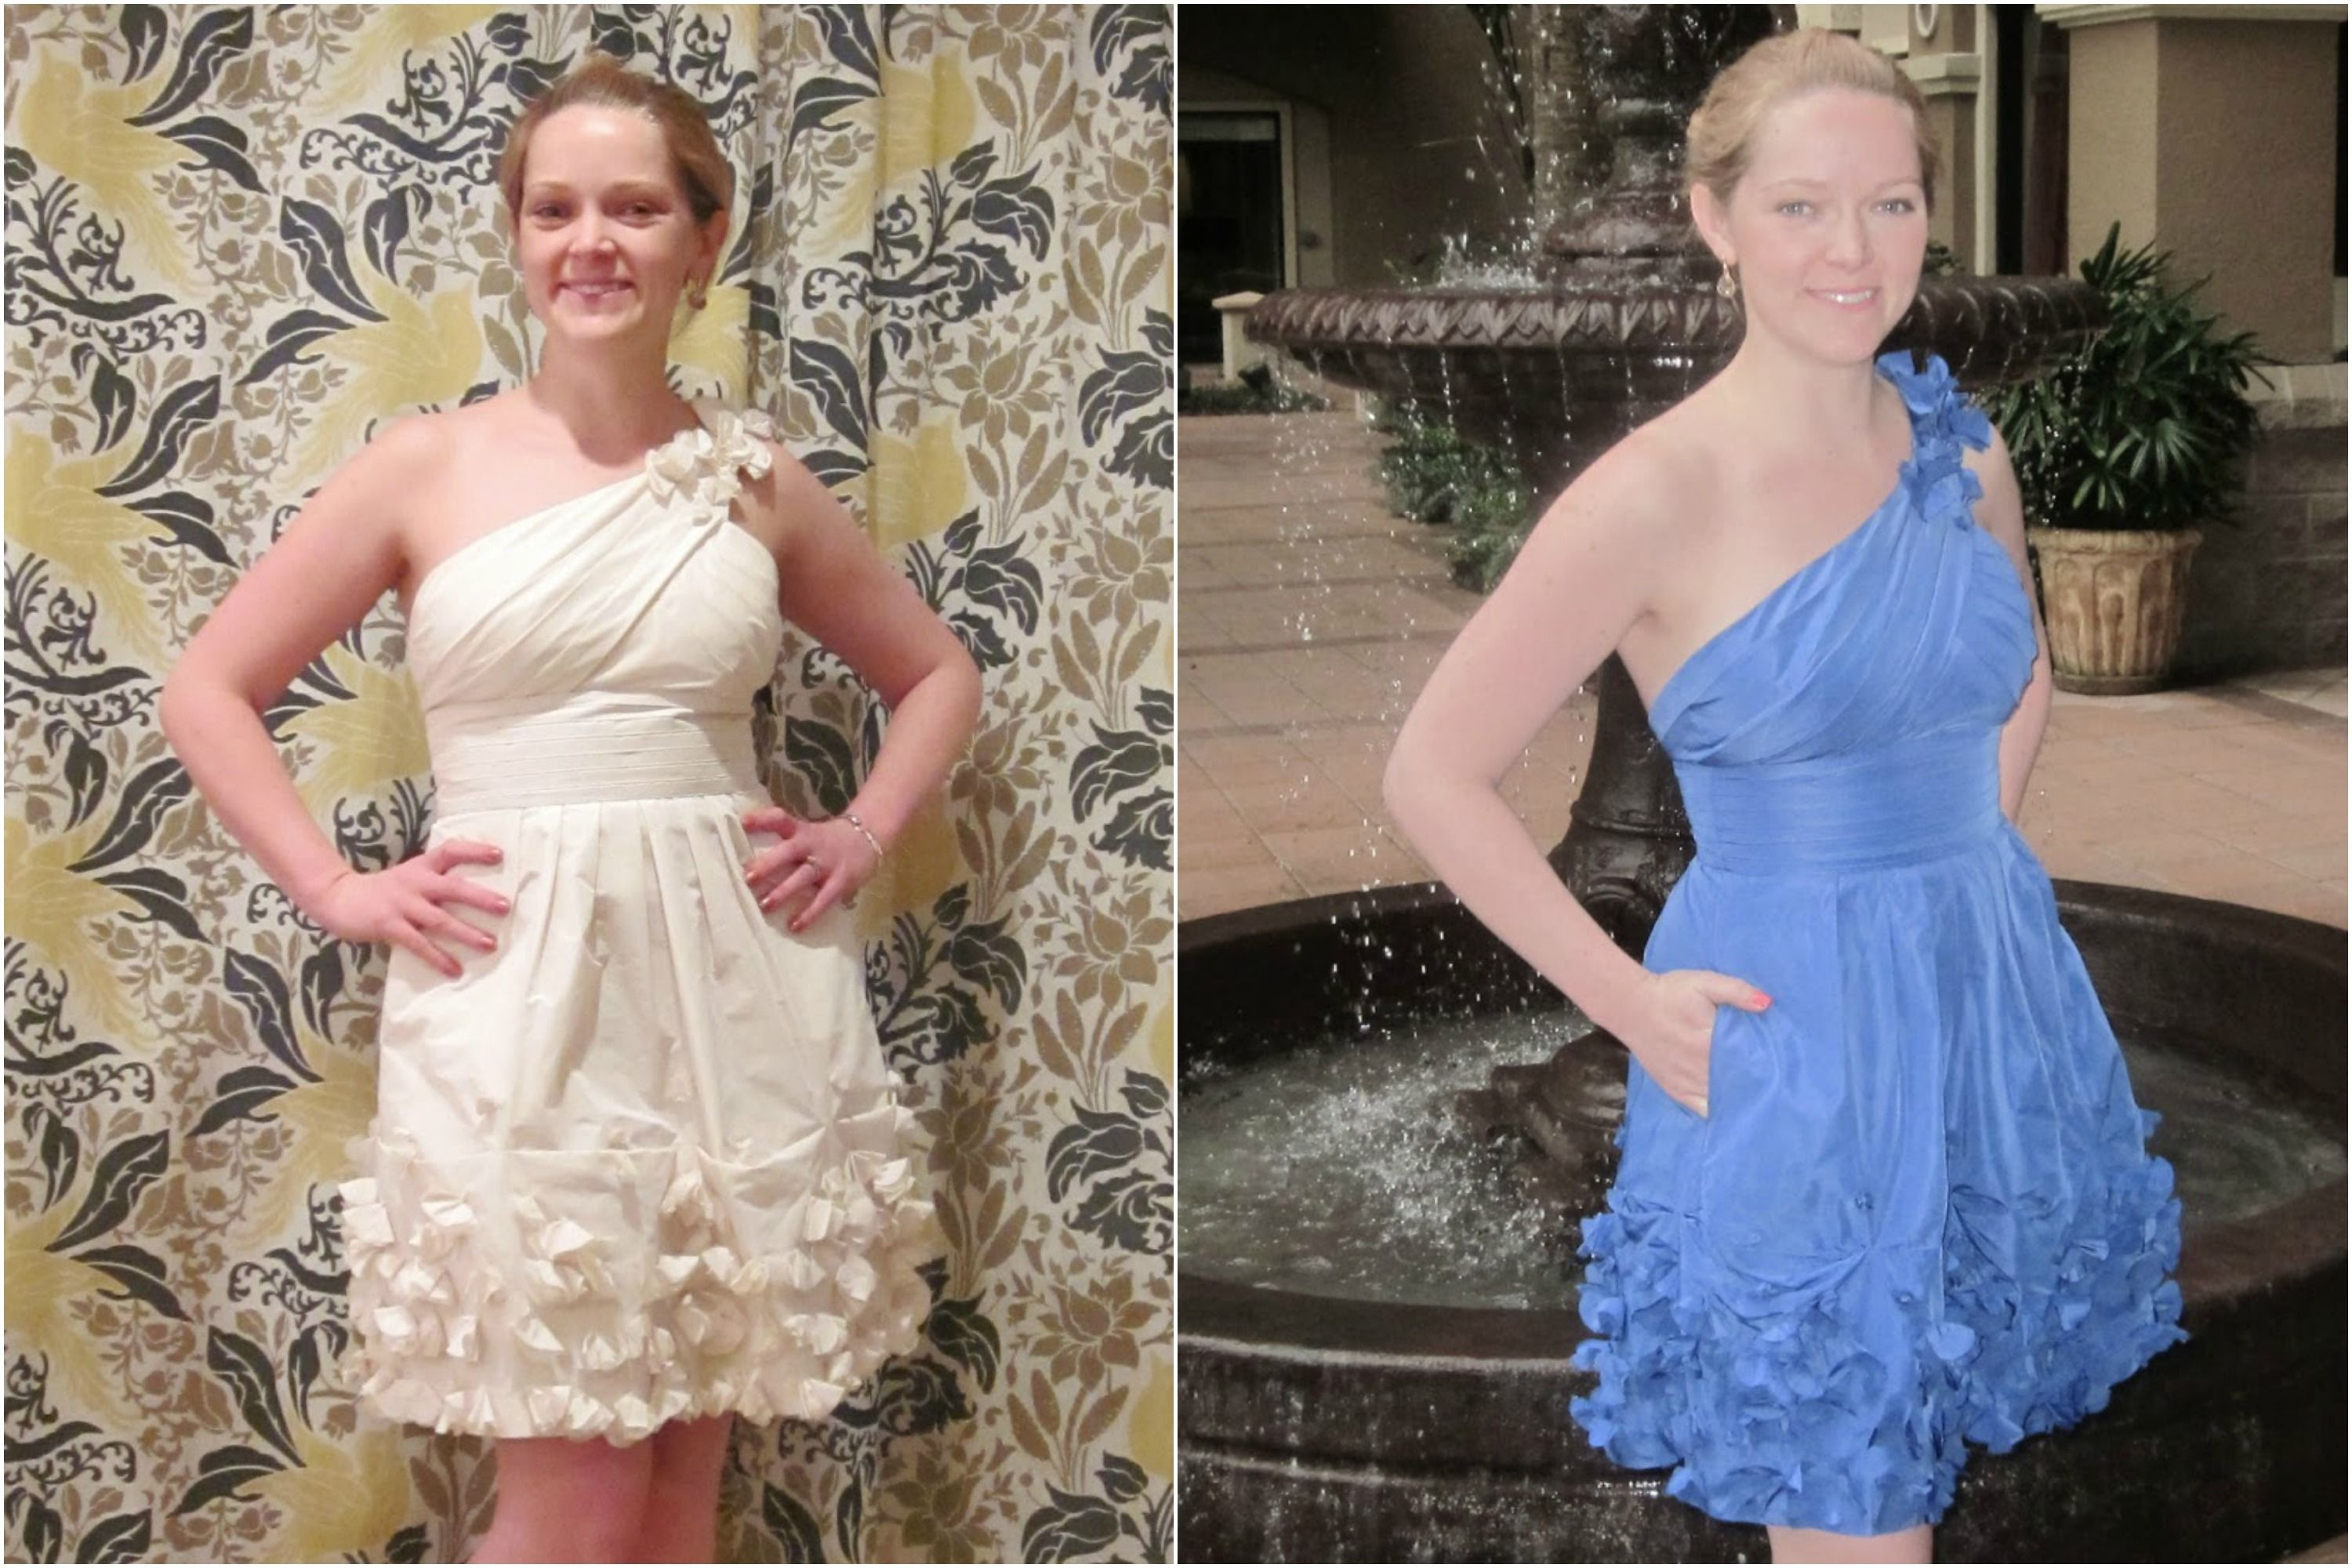 014410cea9 9 Wedding Dress Transformations That Are Seriously Incredible